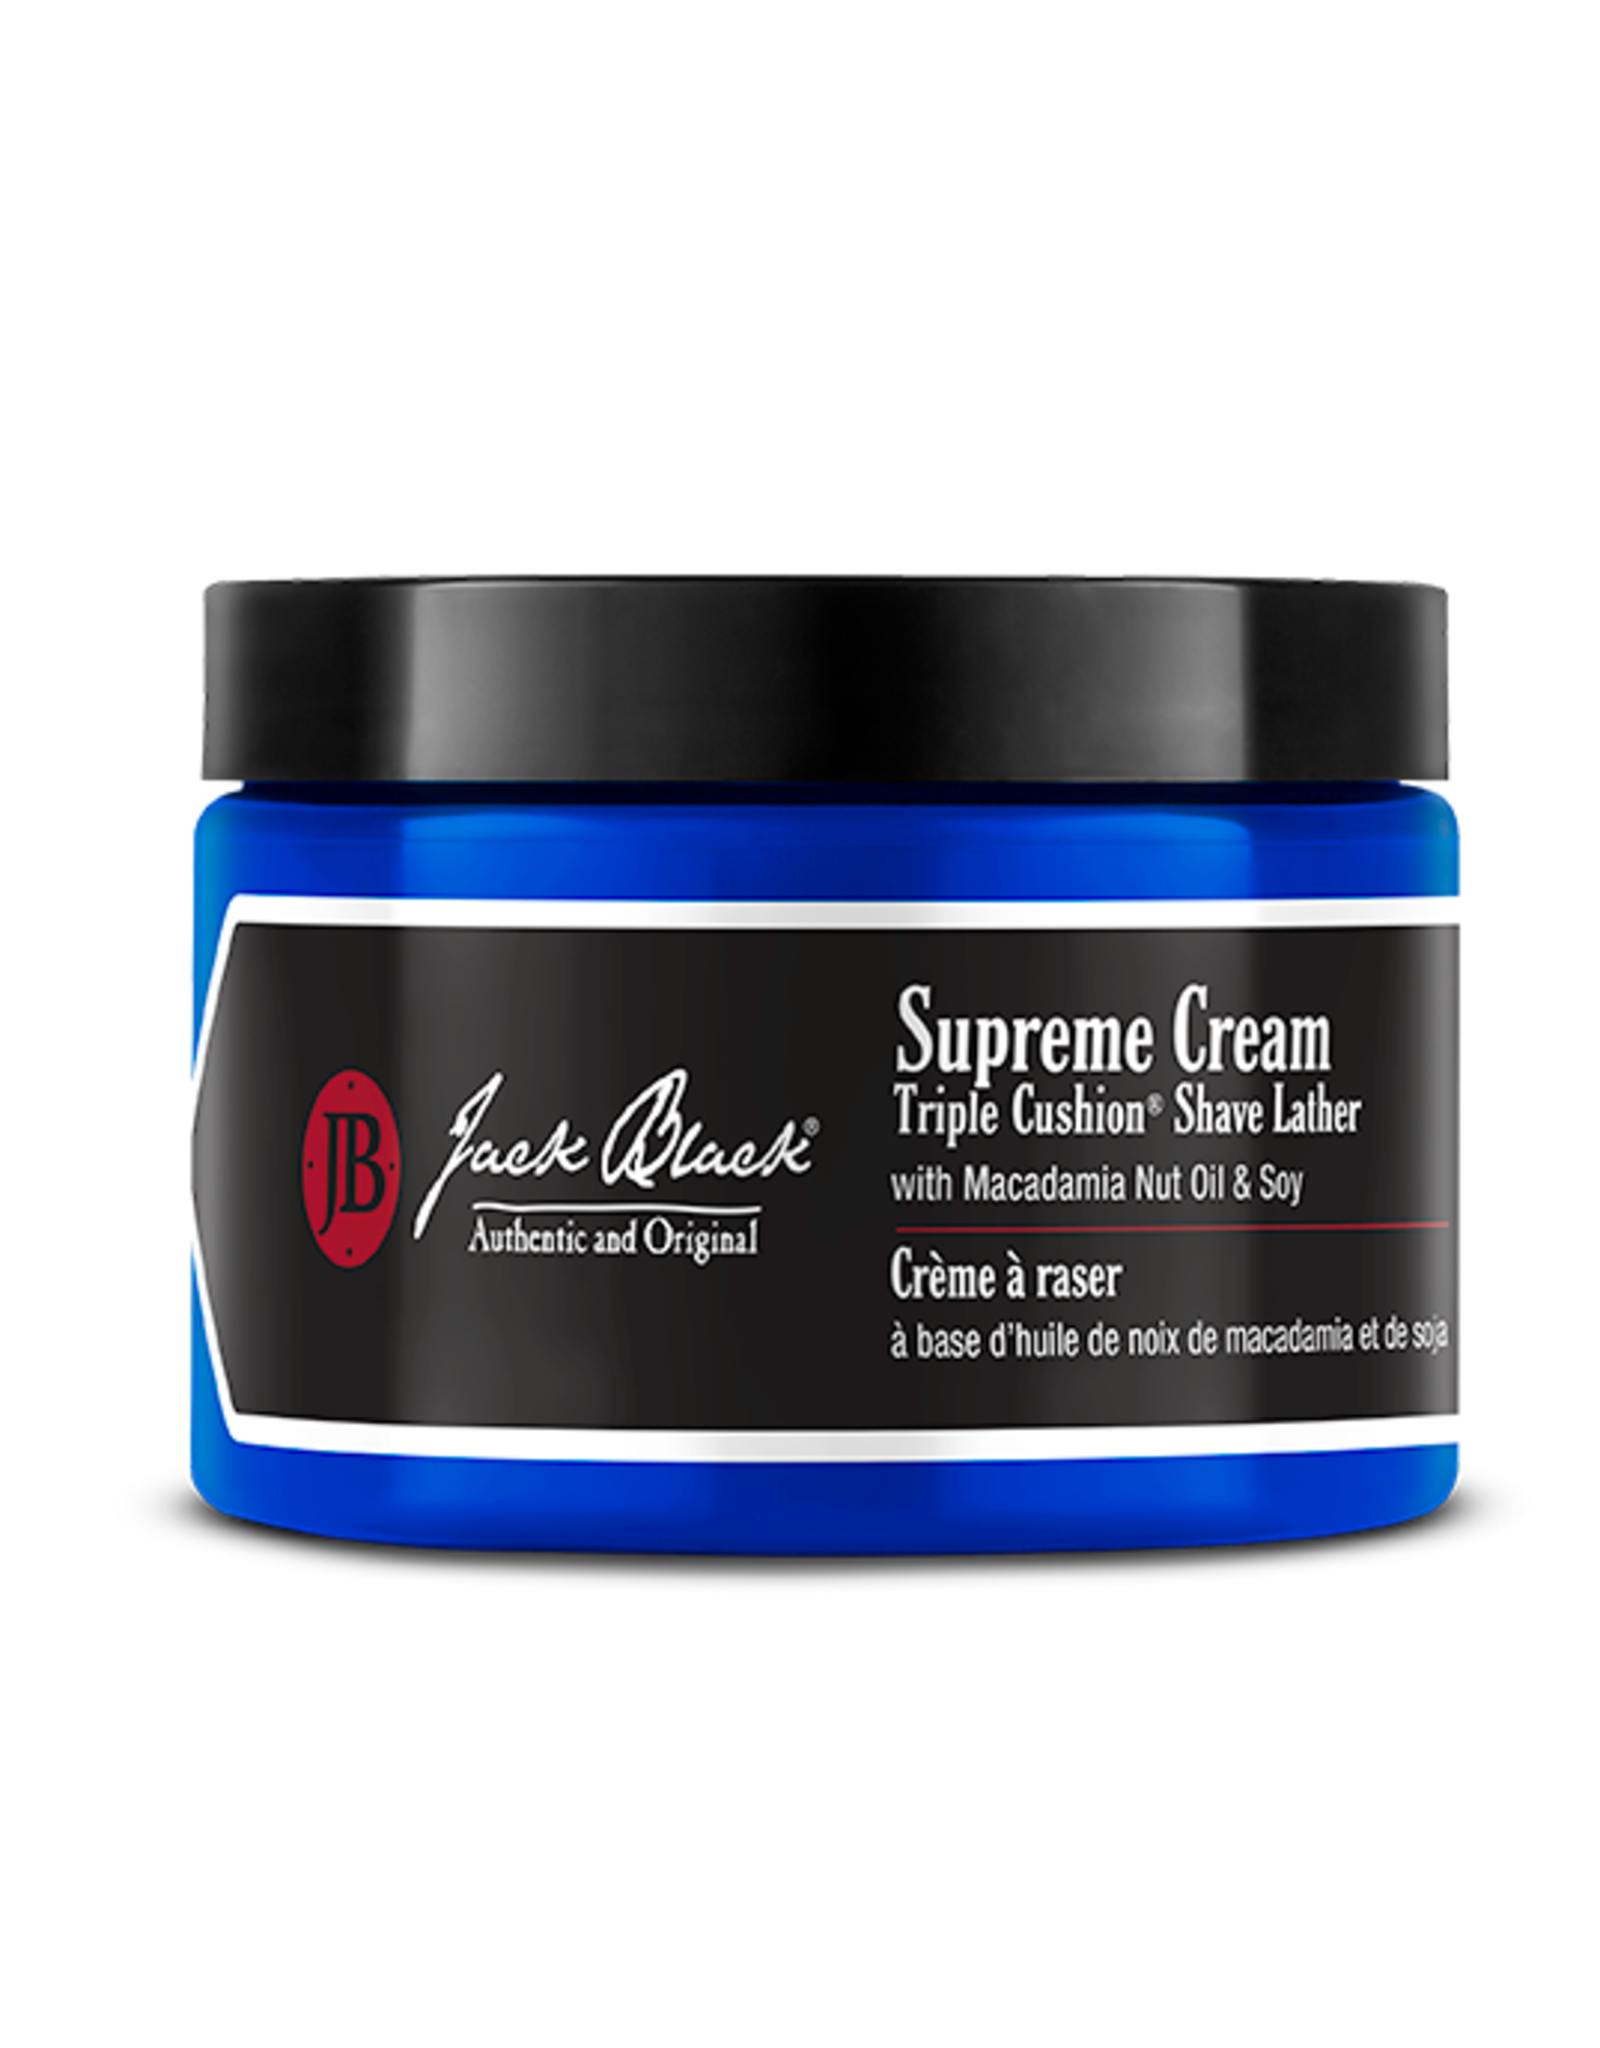 Jack Black Supreme Cream Triple Cushion Shave Lather, 9.5oz by Jack Black